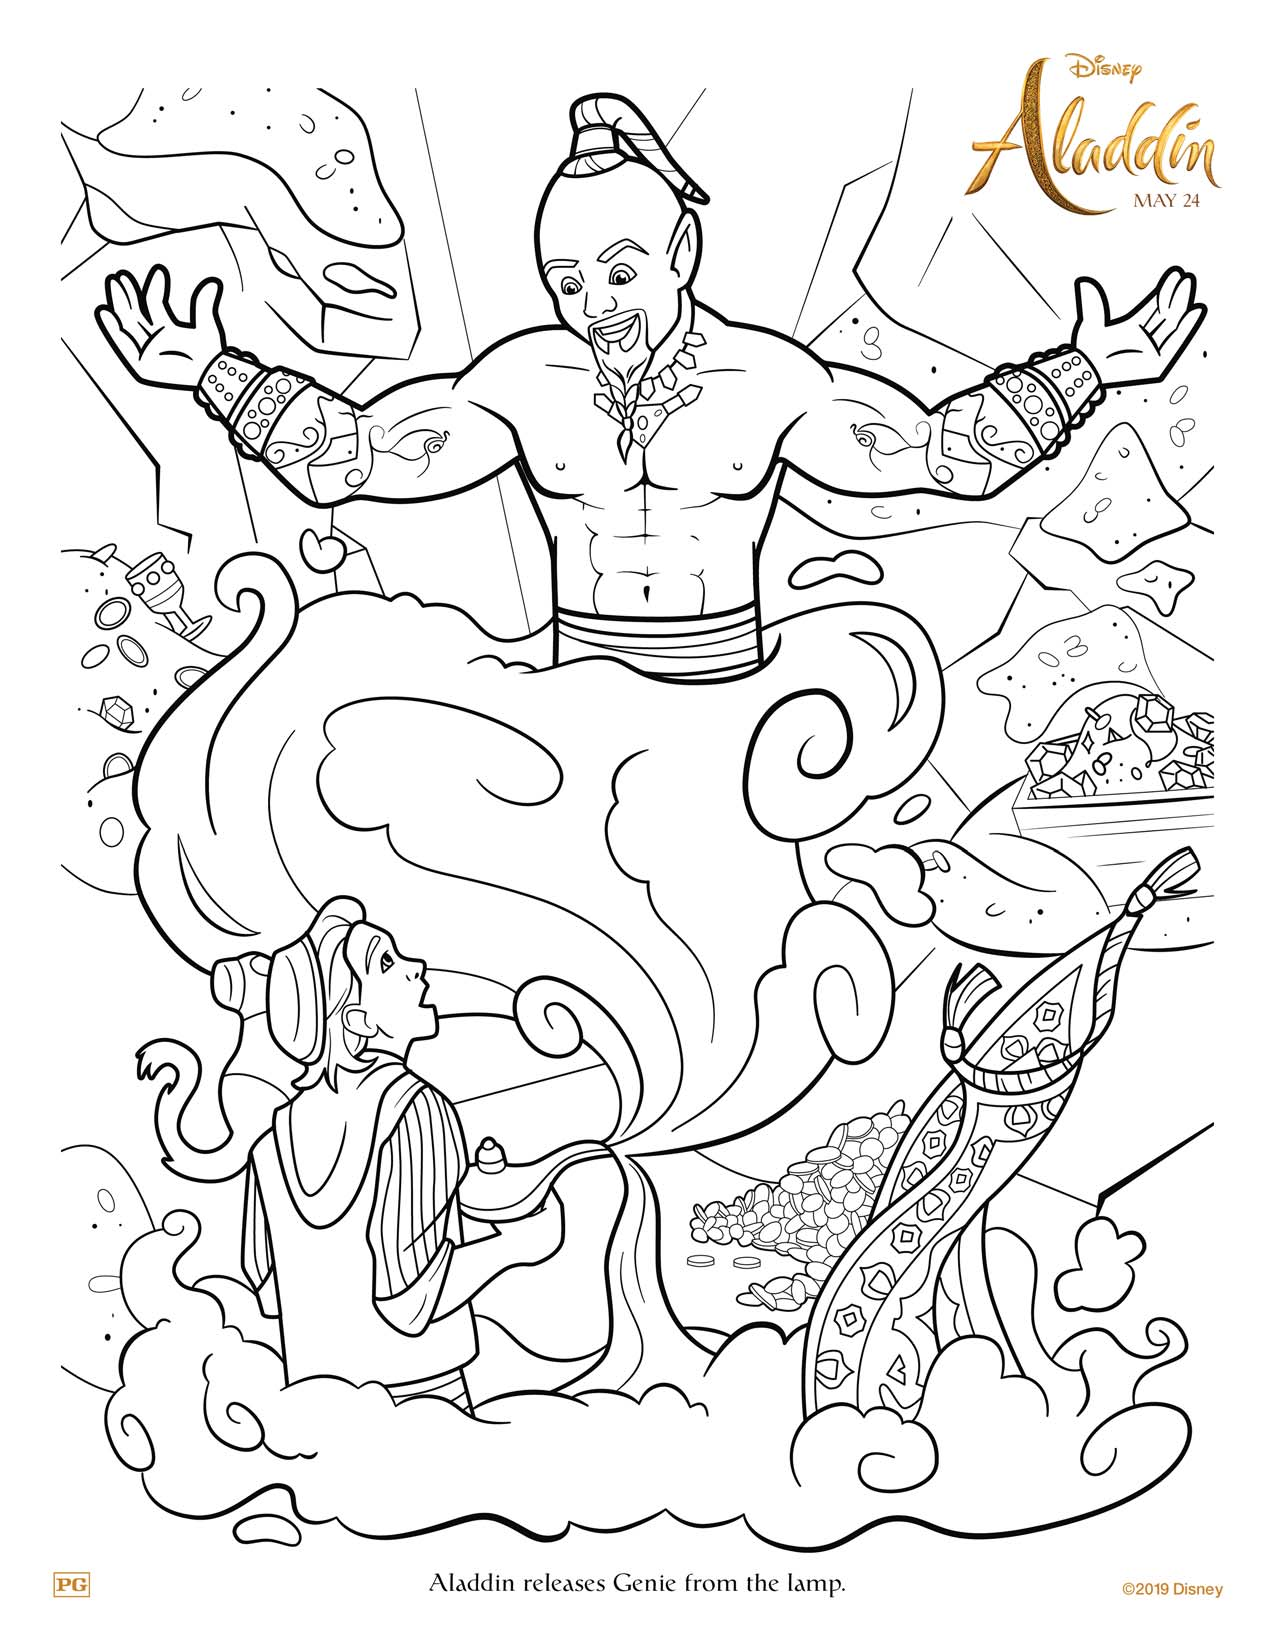 Aladdin and Genie coloring sheet